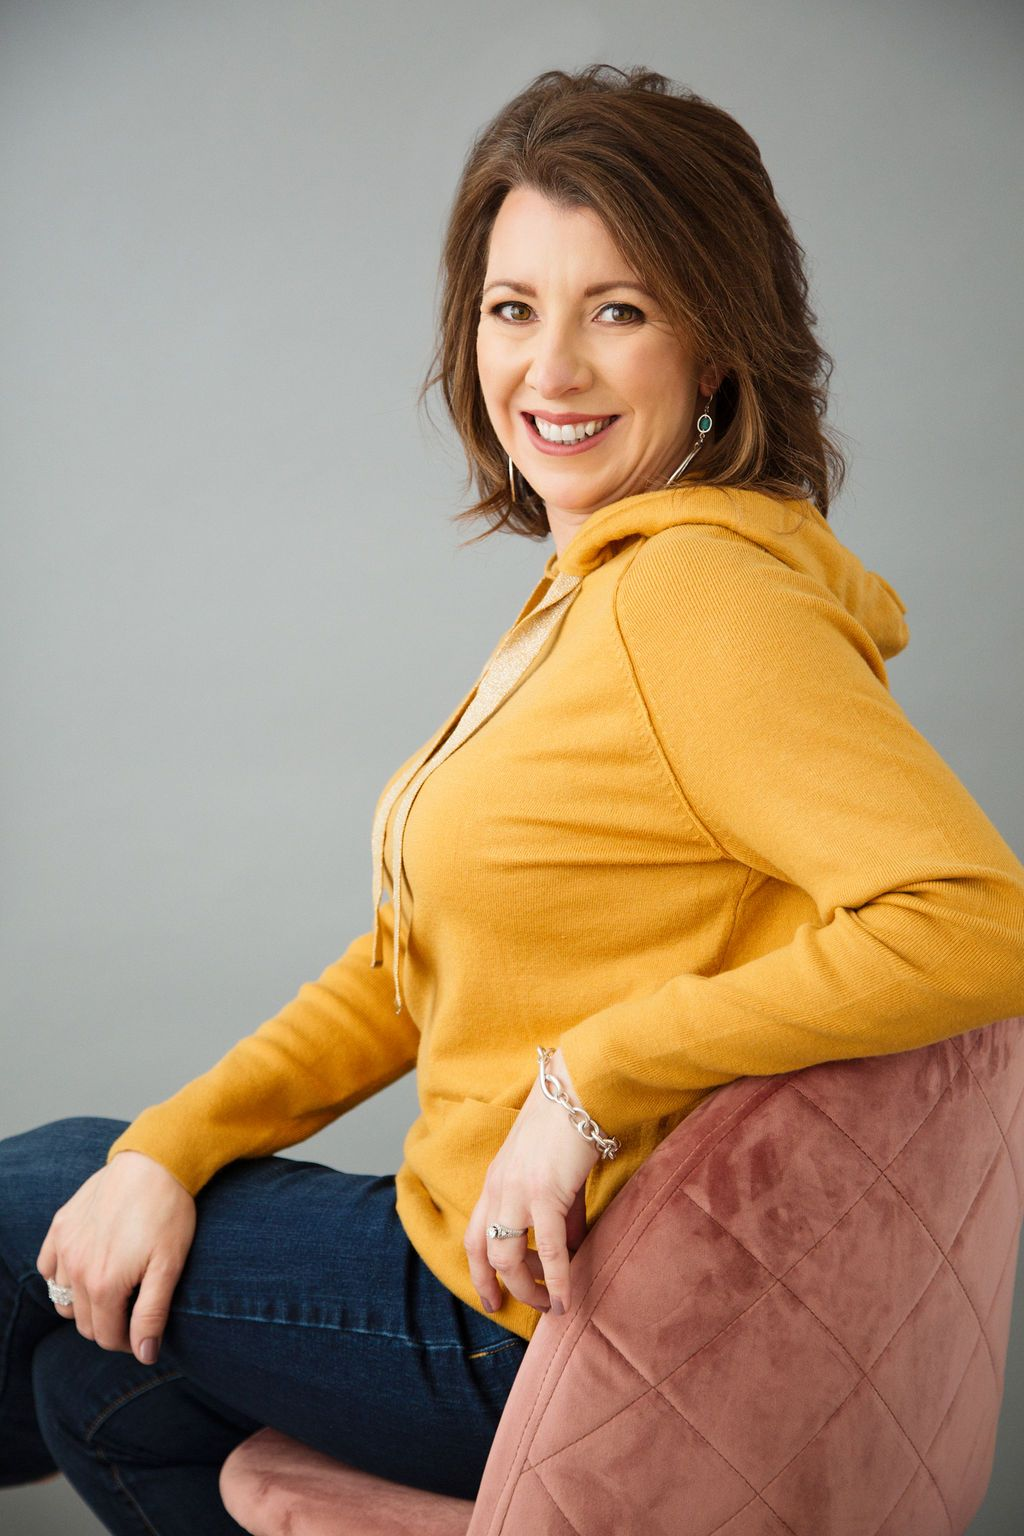 Houston Virtual Assistant Danna Hitchcock in a yellow sweater